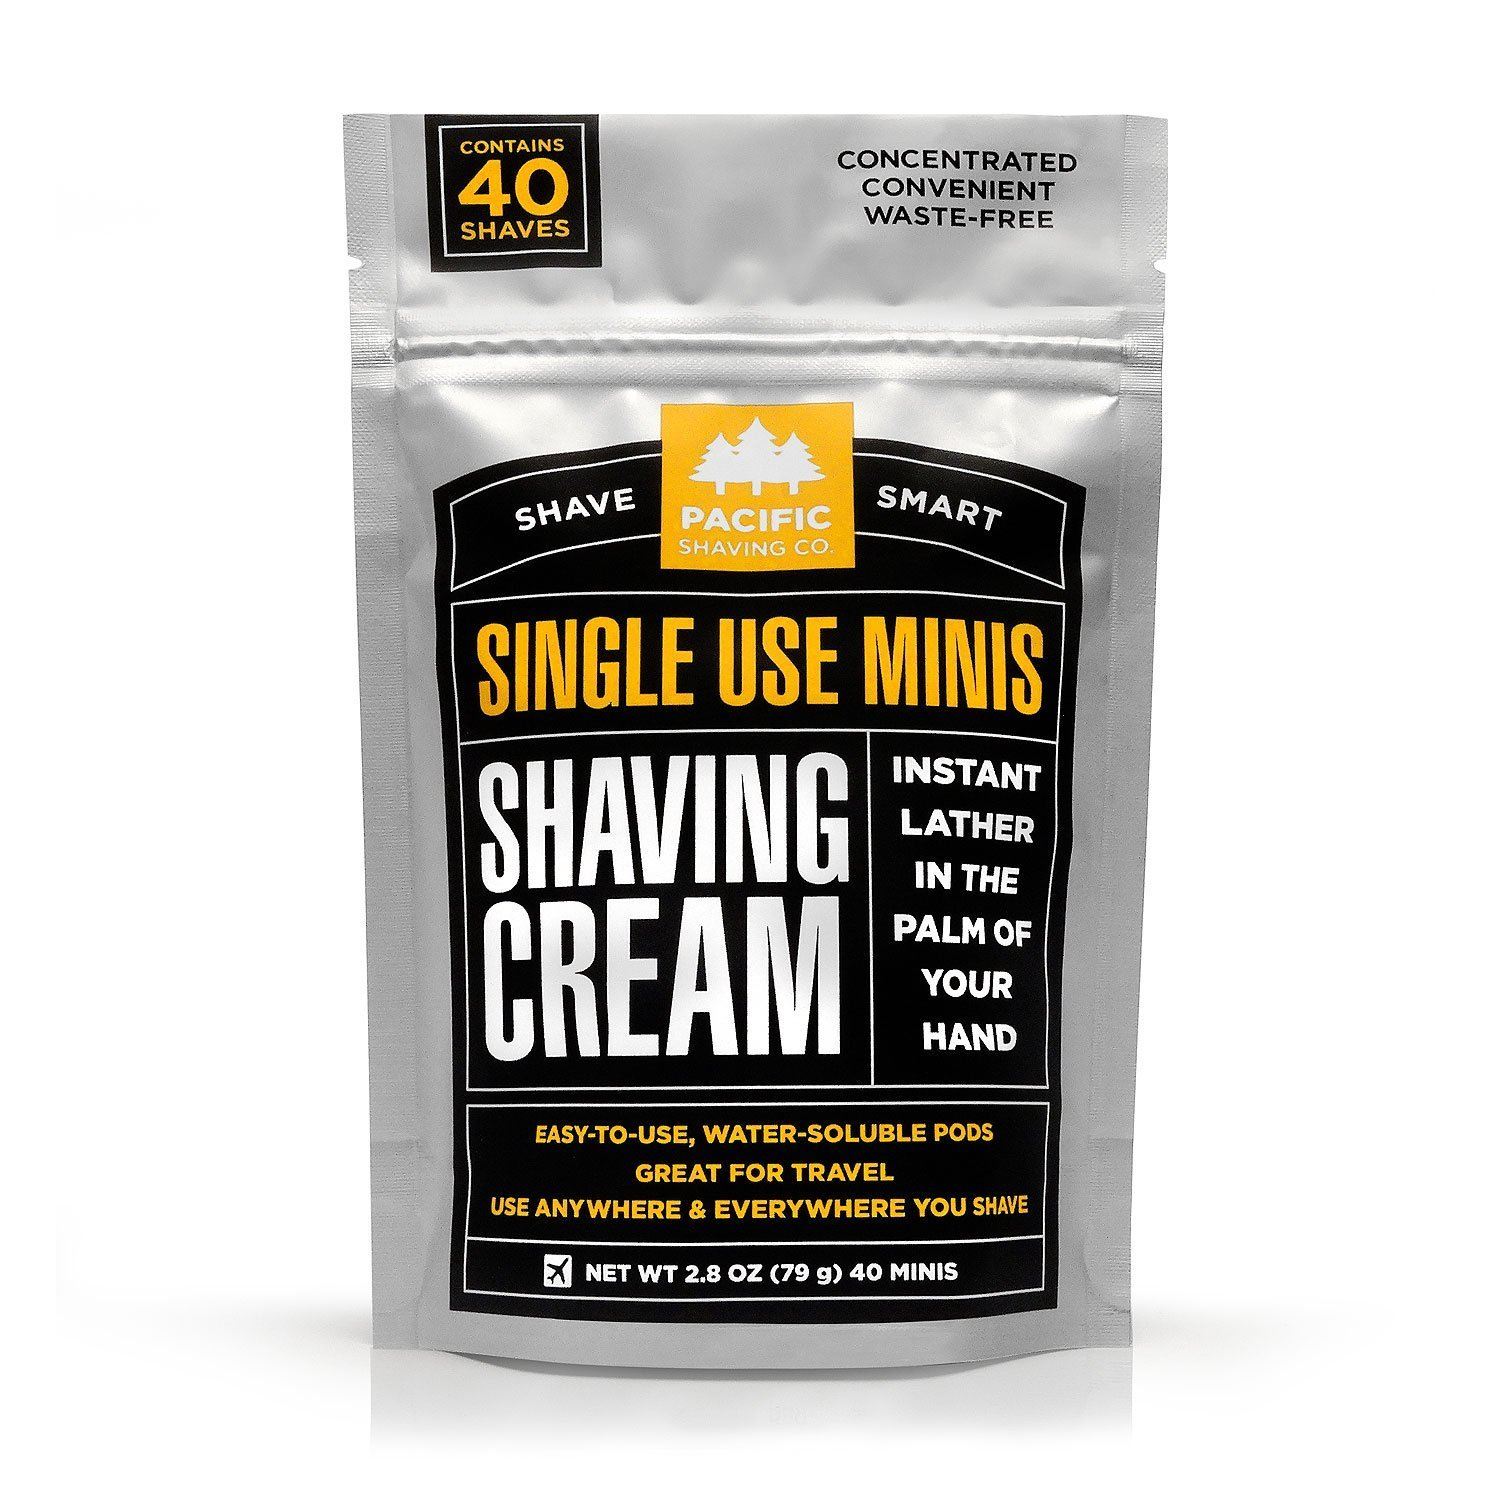 Pacific Shaving Company Shaving Cream Mini's 40 Pods, 1 Pack 186356000229